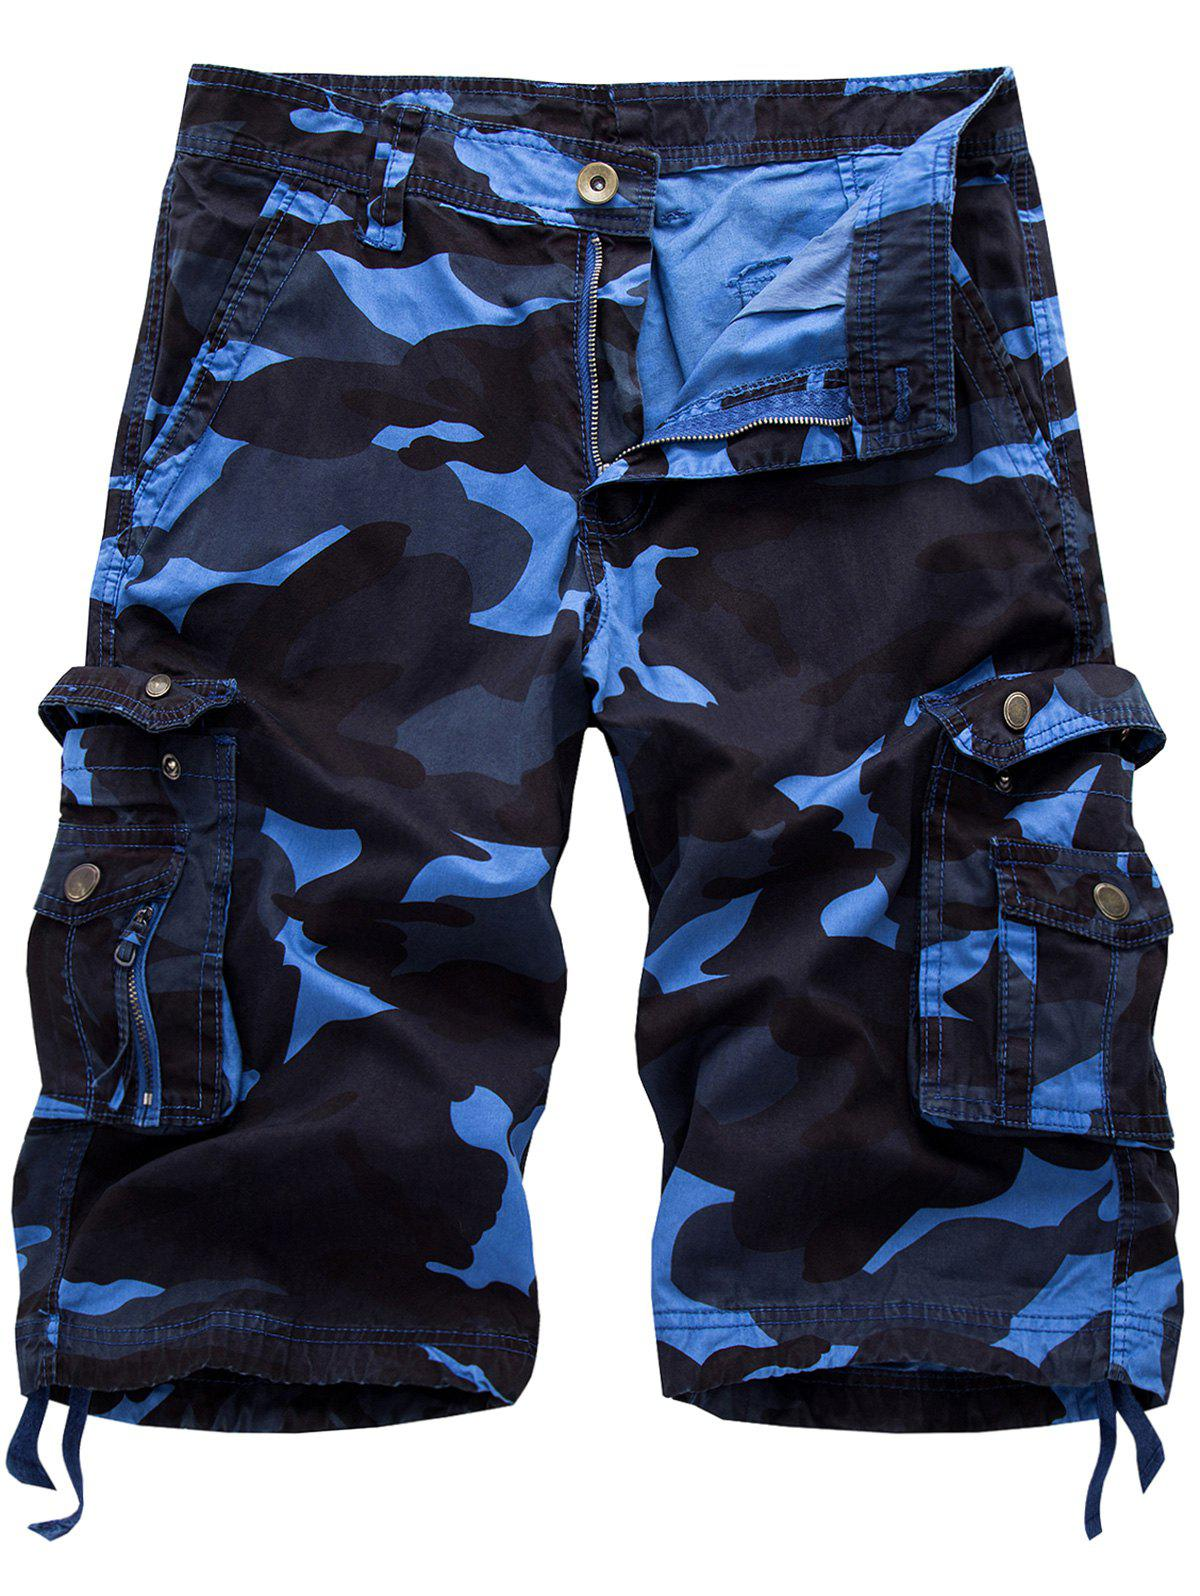 Mens Camo Shorts Add instant cool to any casual outfit with a pair of men's camo shorts. This laid-back print offers the perfect balance between rough and relaxed.